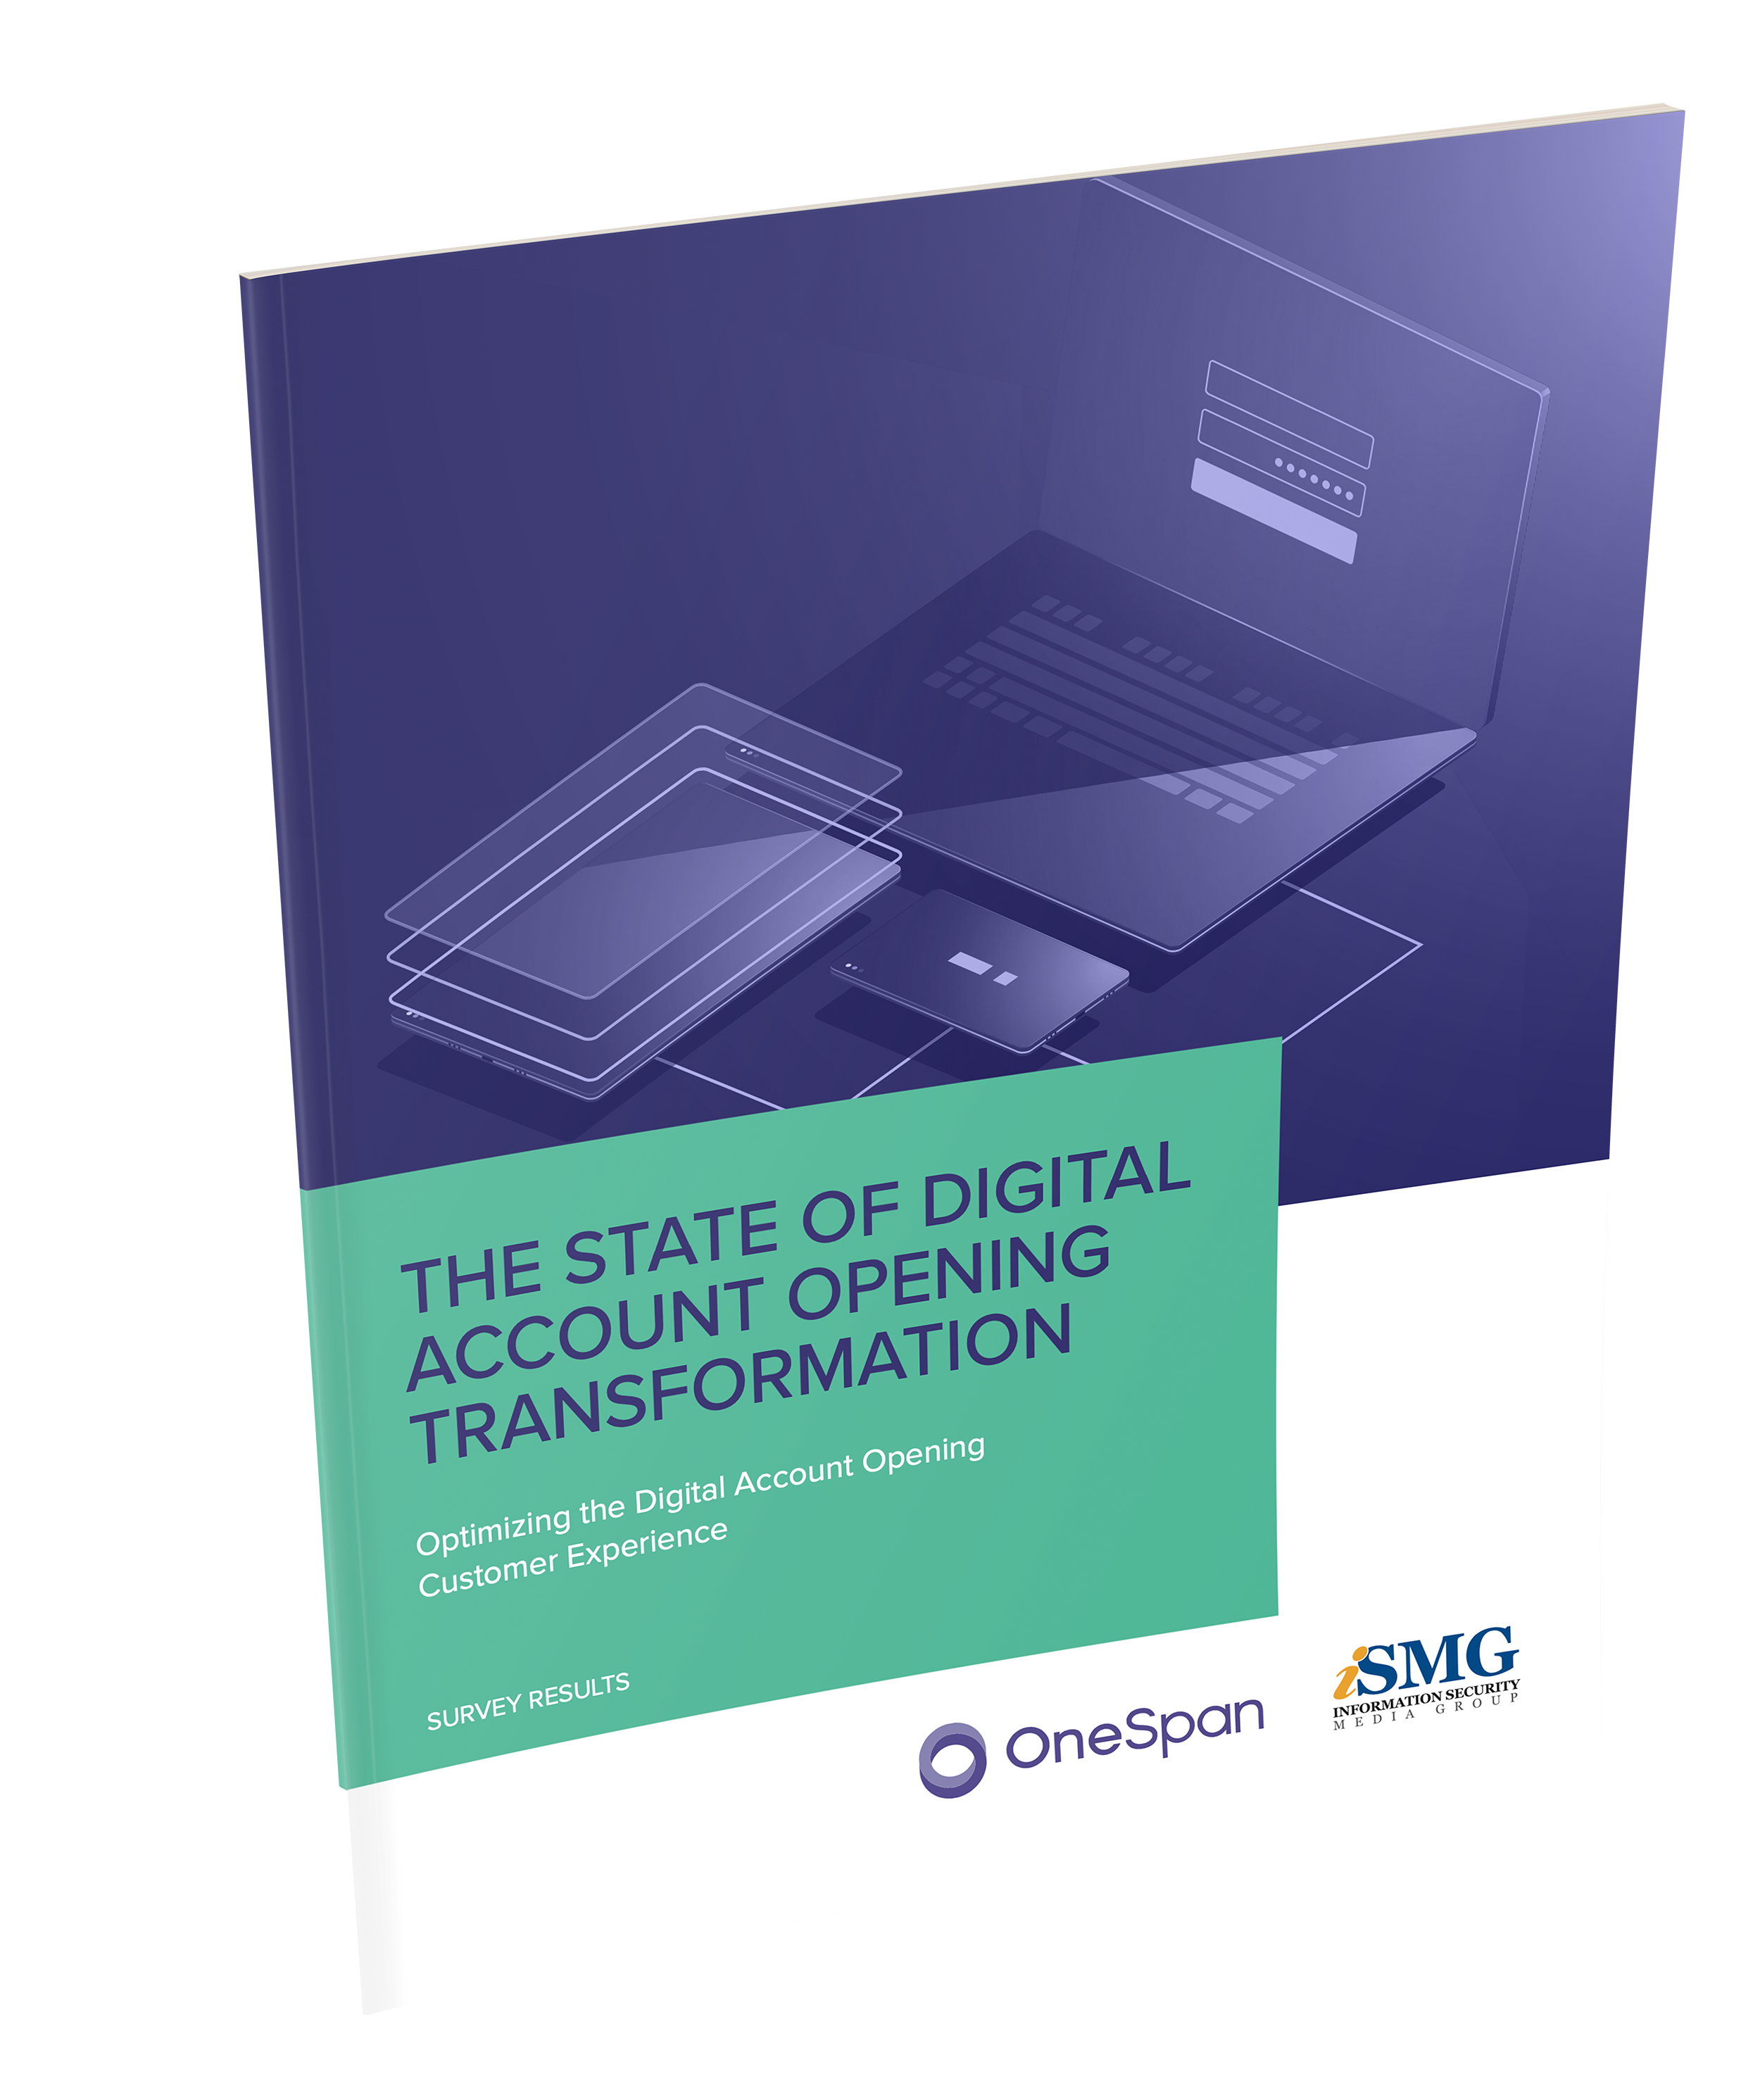 ISMG Report: State of Digital Account Opening Transformation